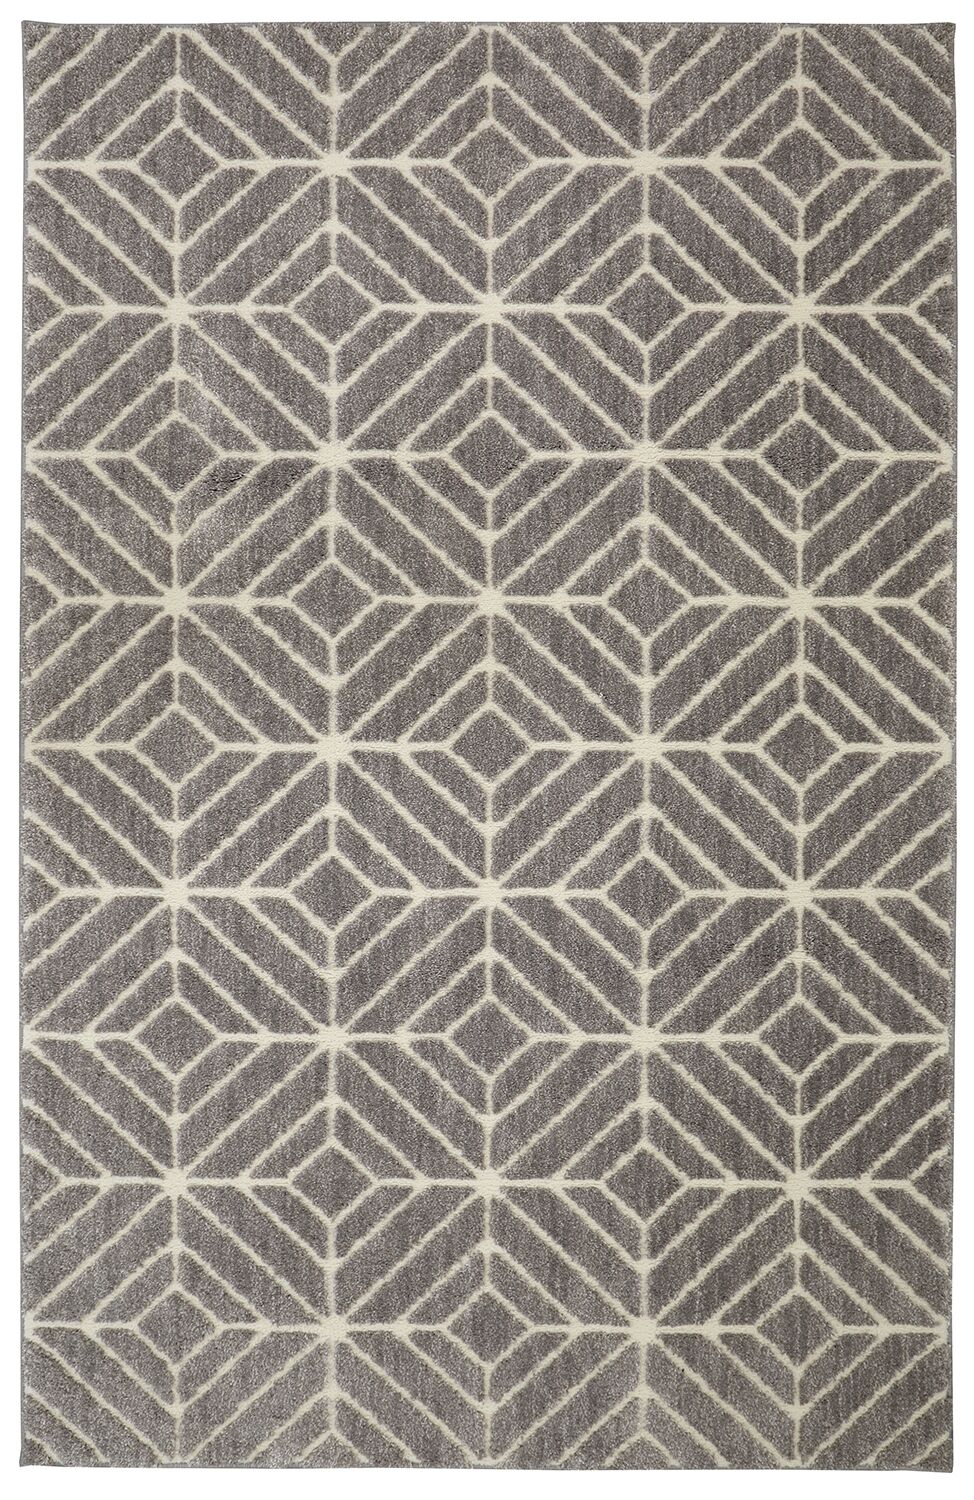 Braydon Quilted Geo Beige/Tan Area Rug Rug Size: Rectangle 5' x 7'